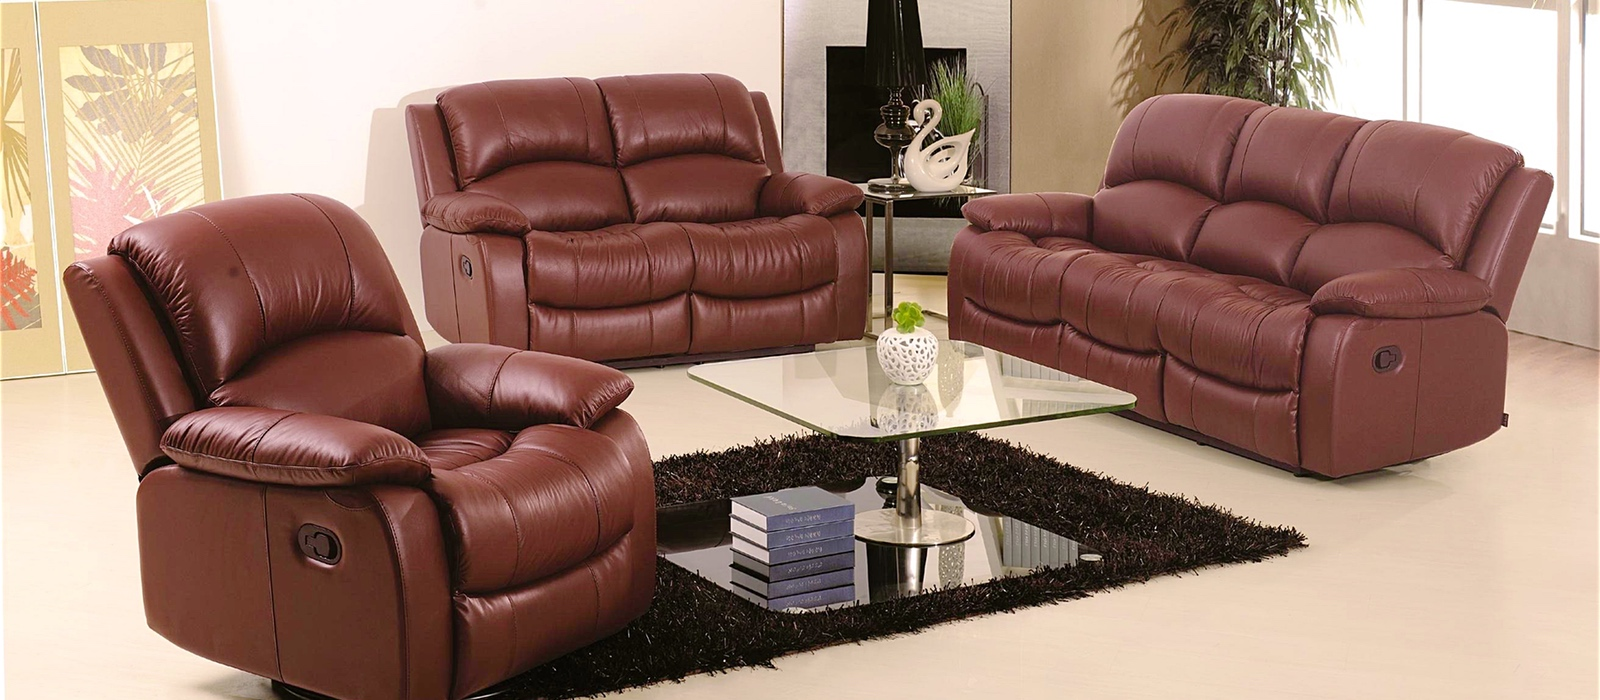 Brown colored leather sofa in luxurious interior room